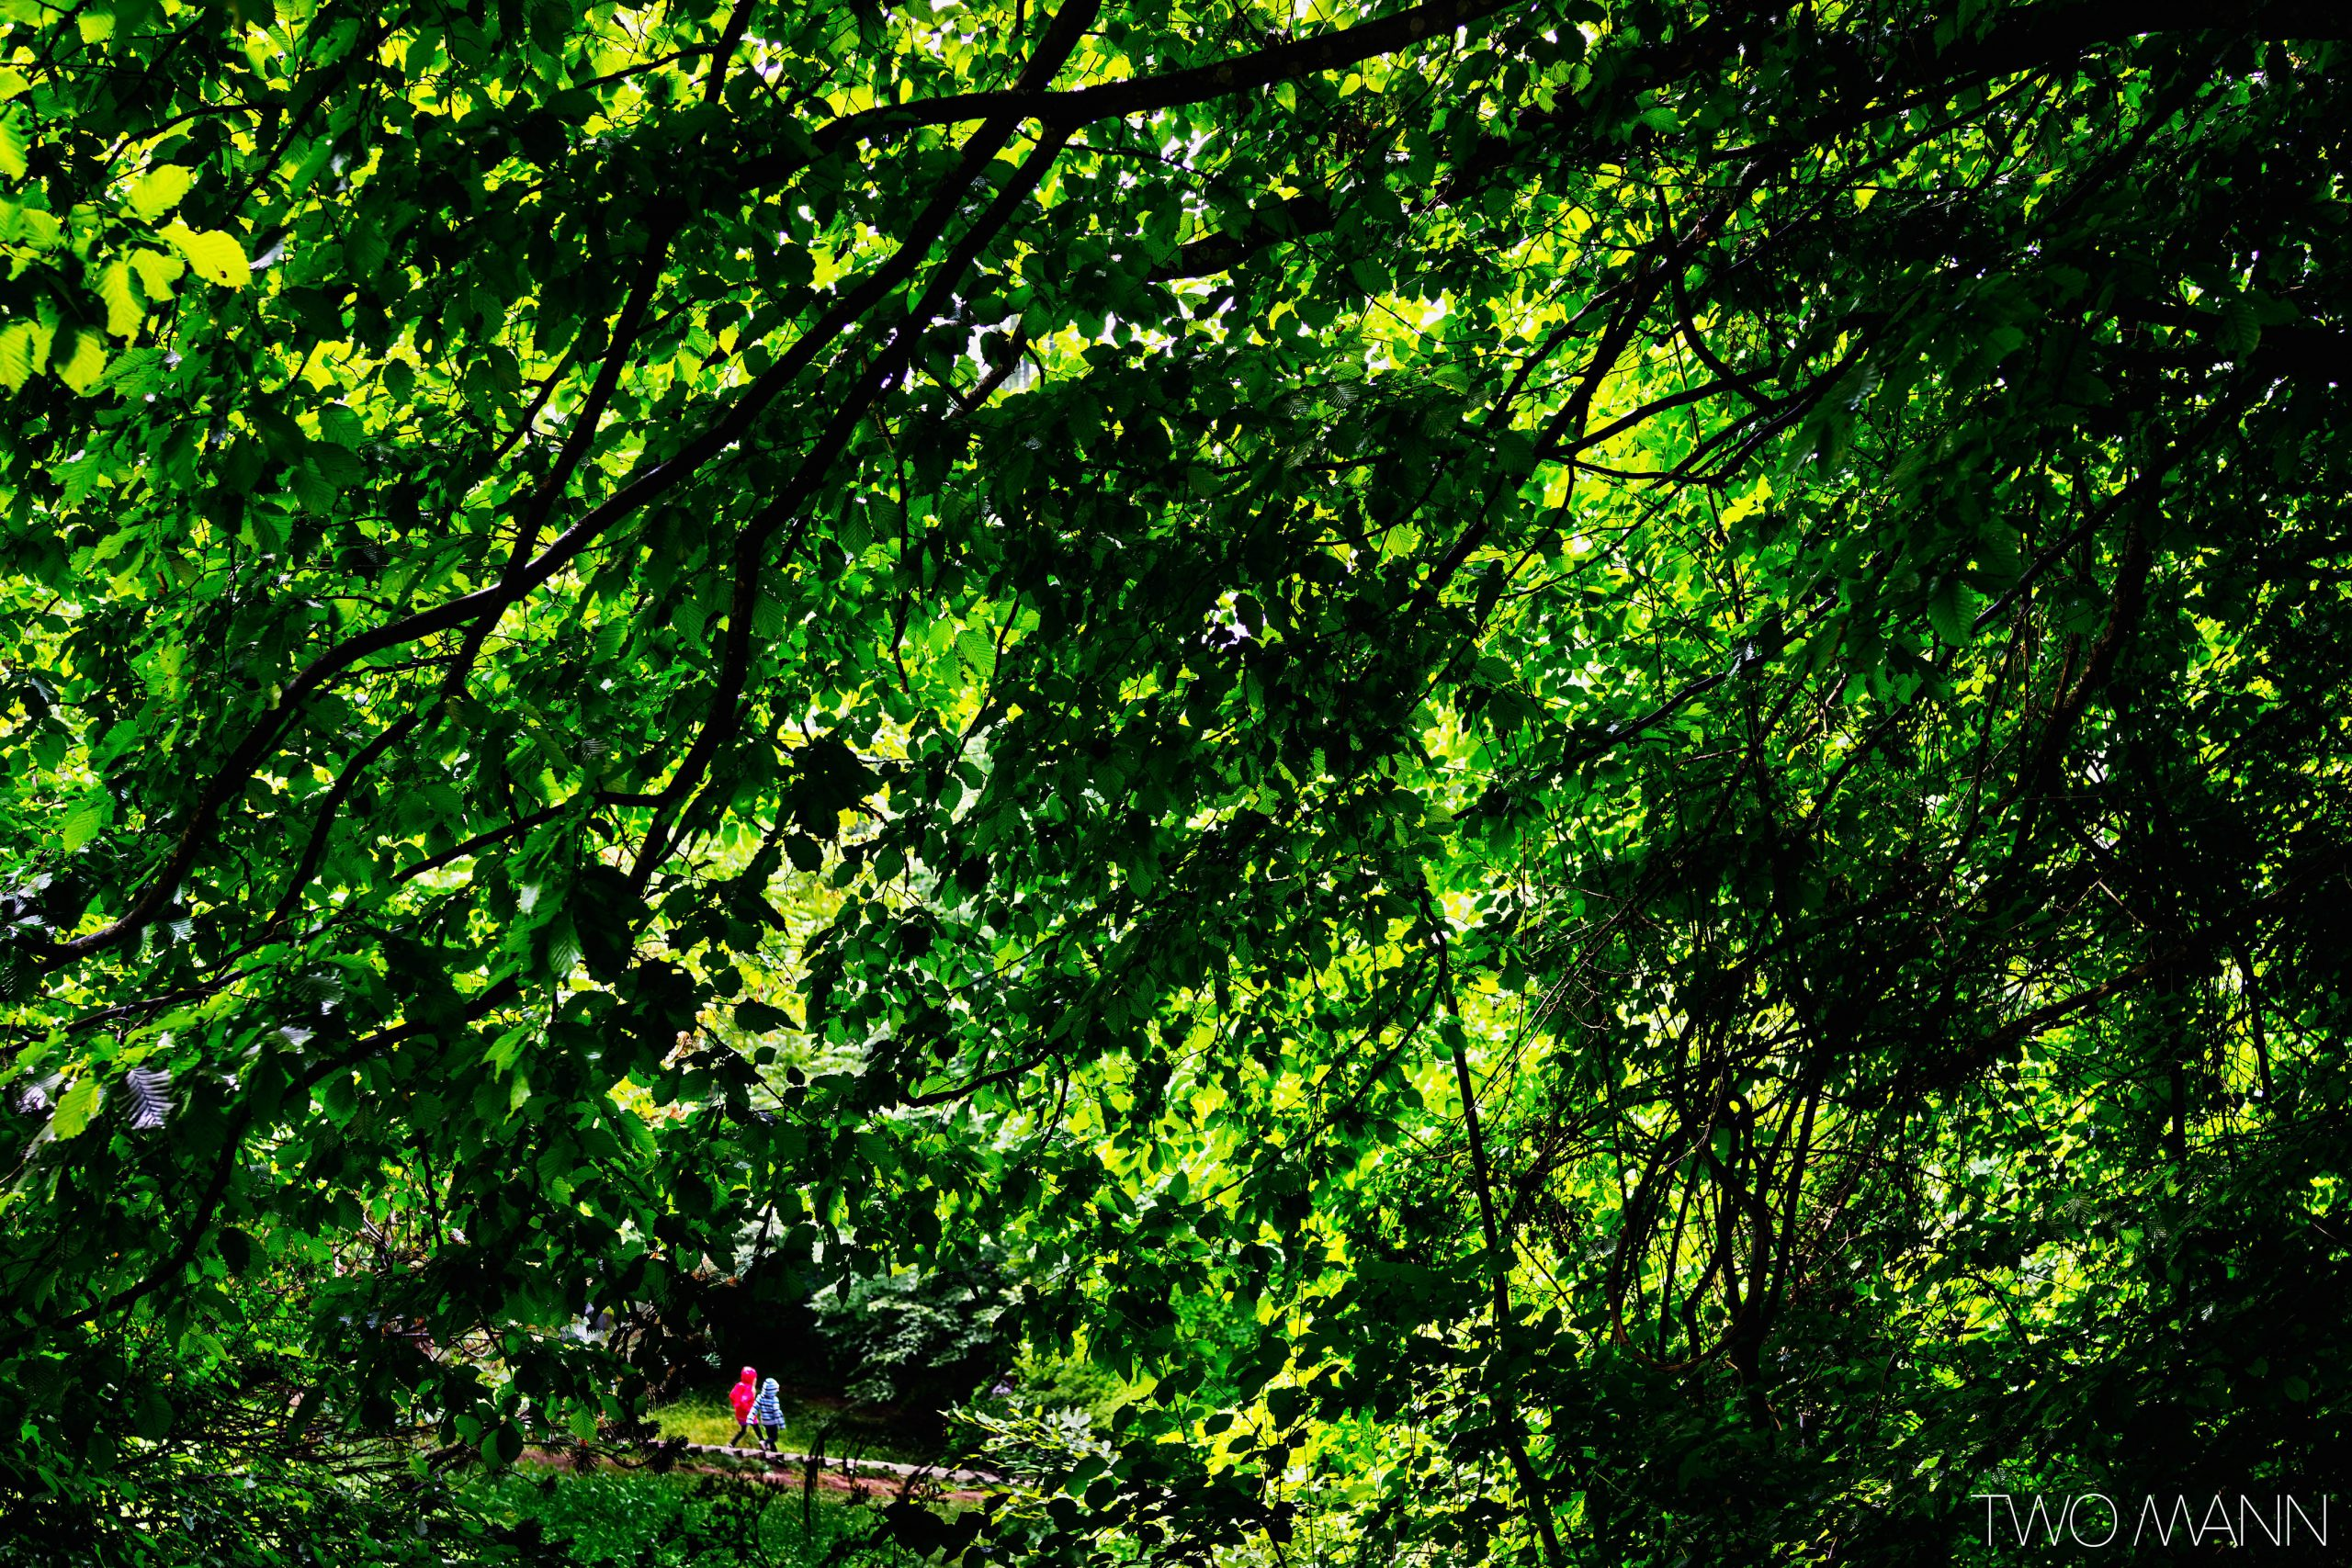 Kids walking on red soil path in lush green forest